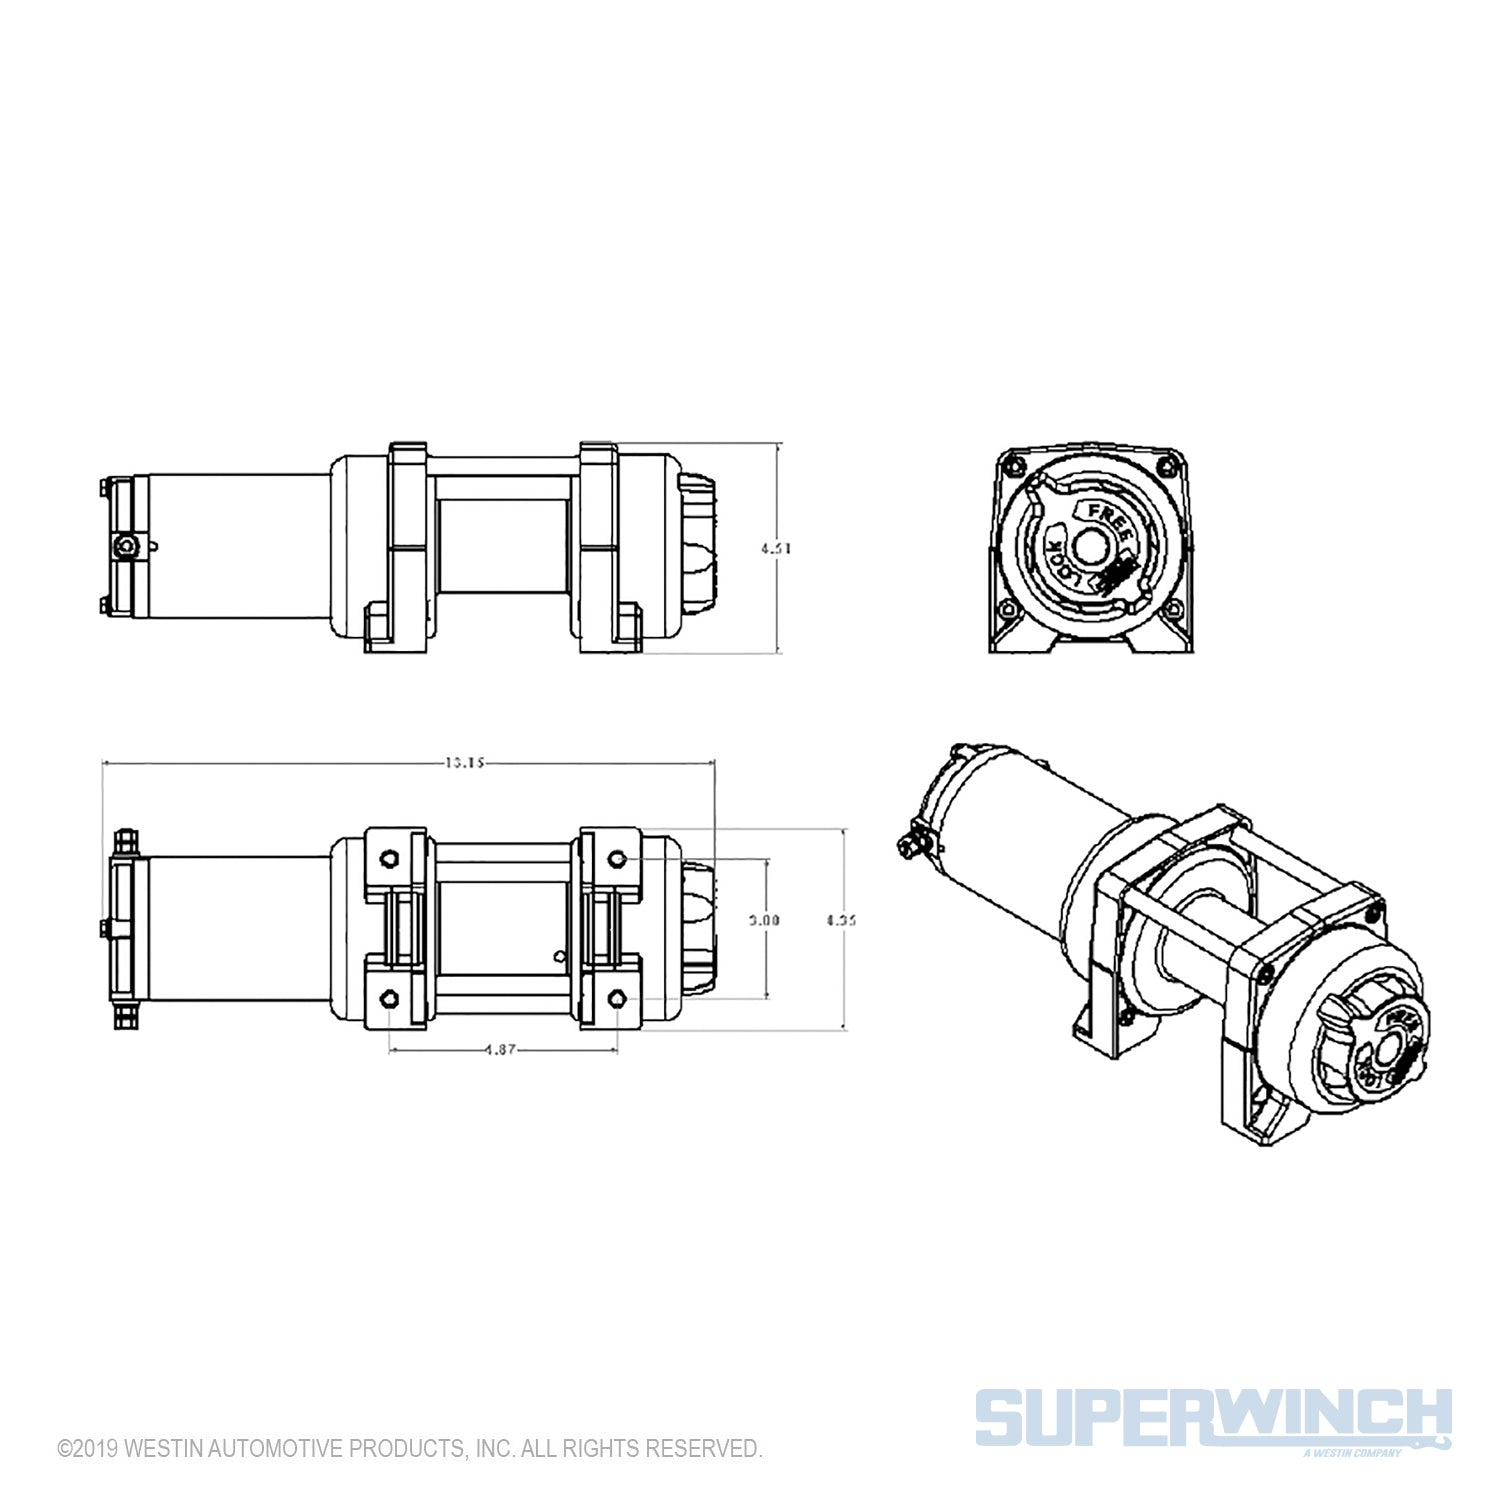 Diagram Superwinch T1500 Wiring Diagram Full Version Hd Quality Wiring Diagram Diagrambertax Jodenjoy It